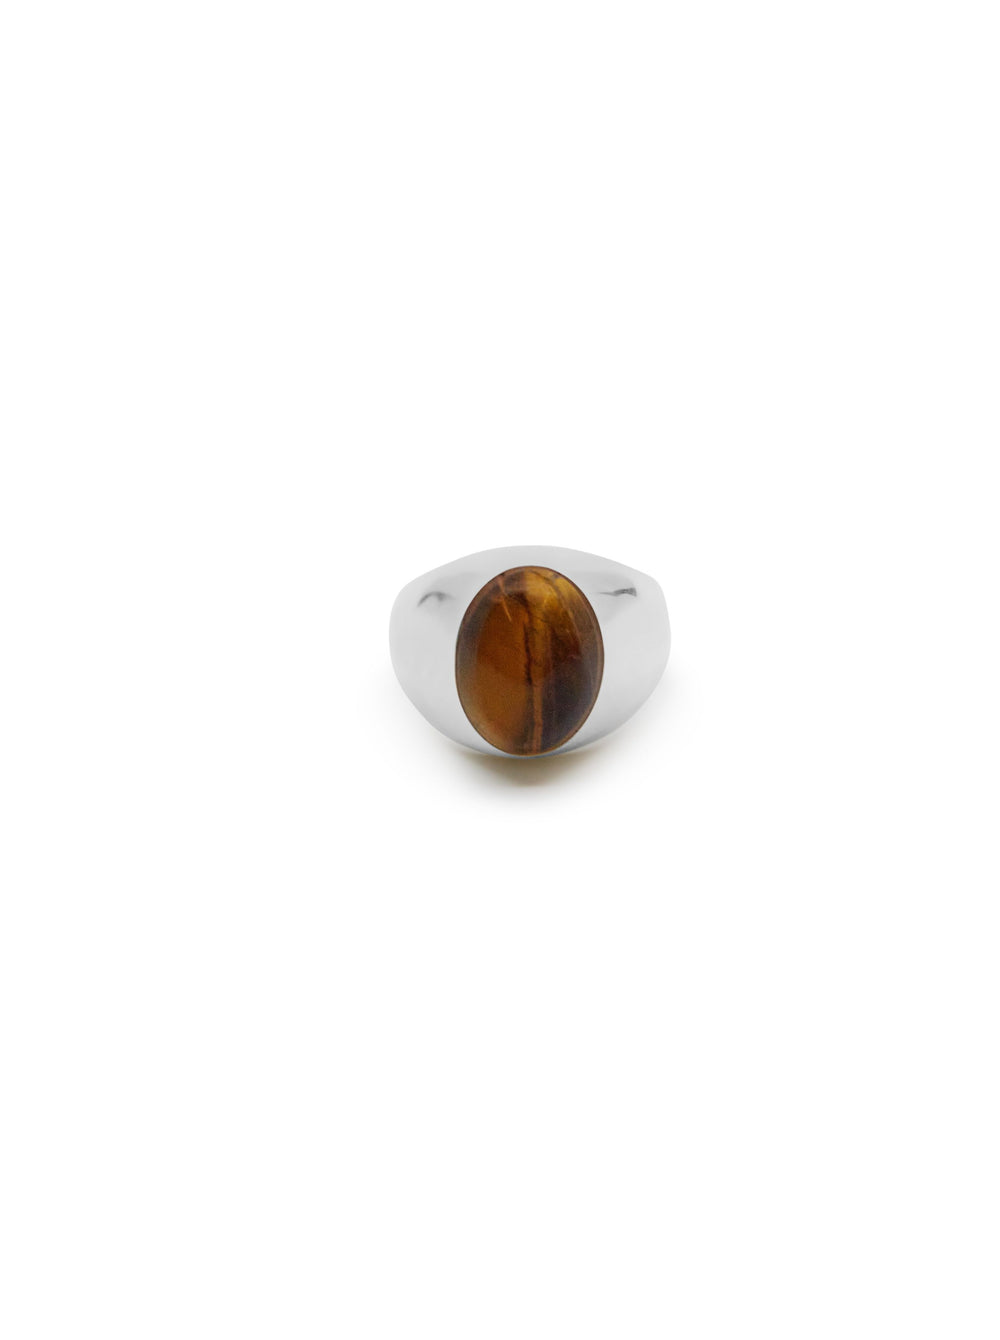 THE YVES TIGER EYE RING (ALEXANDER ROTH X THE M JEWELERS)